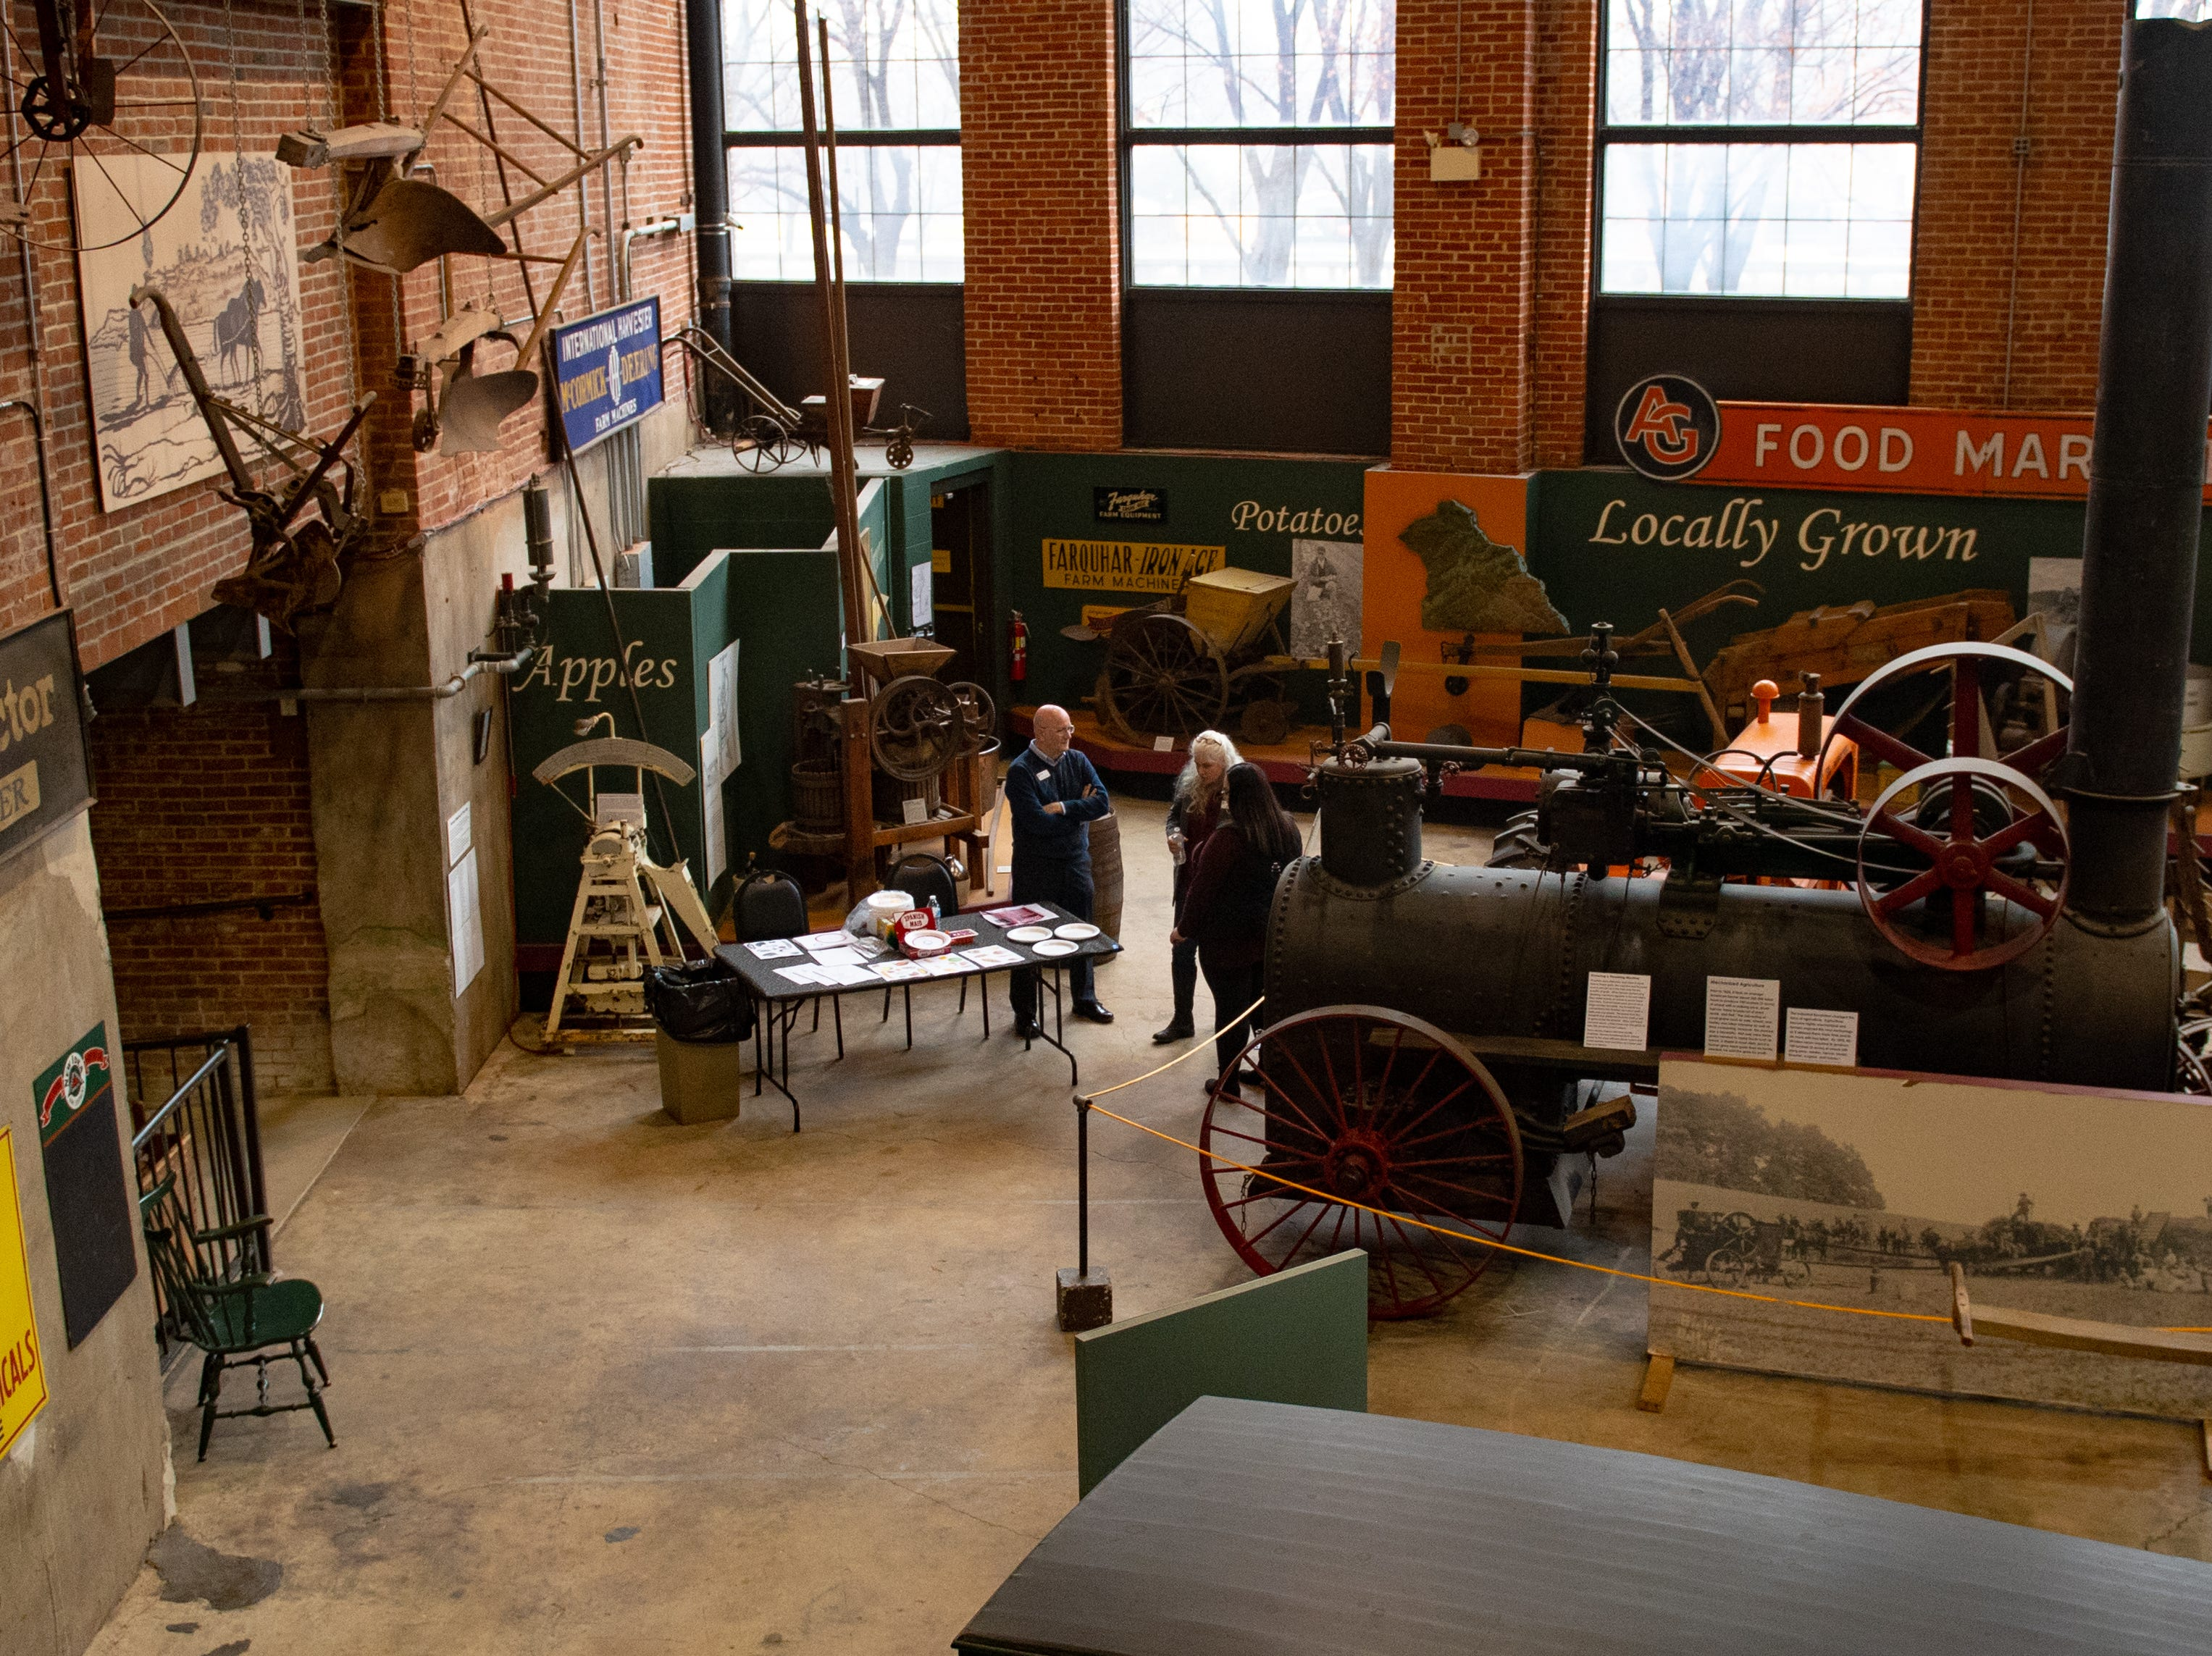 Family Activity Day is spread throughout the Agricultural and Industrial Museum. An educational booth sits in each part of the building, Friday, December 28, 2018.